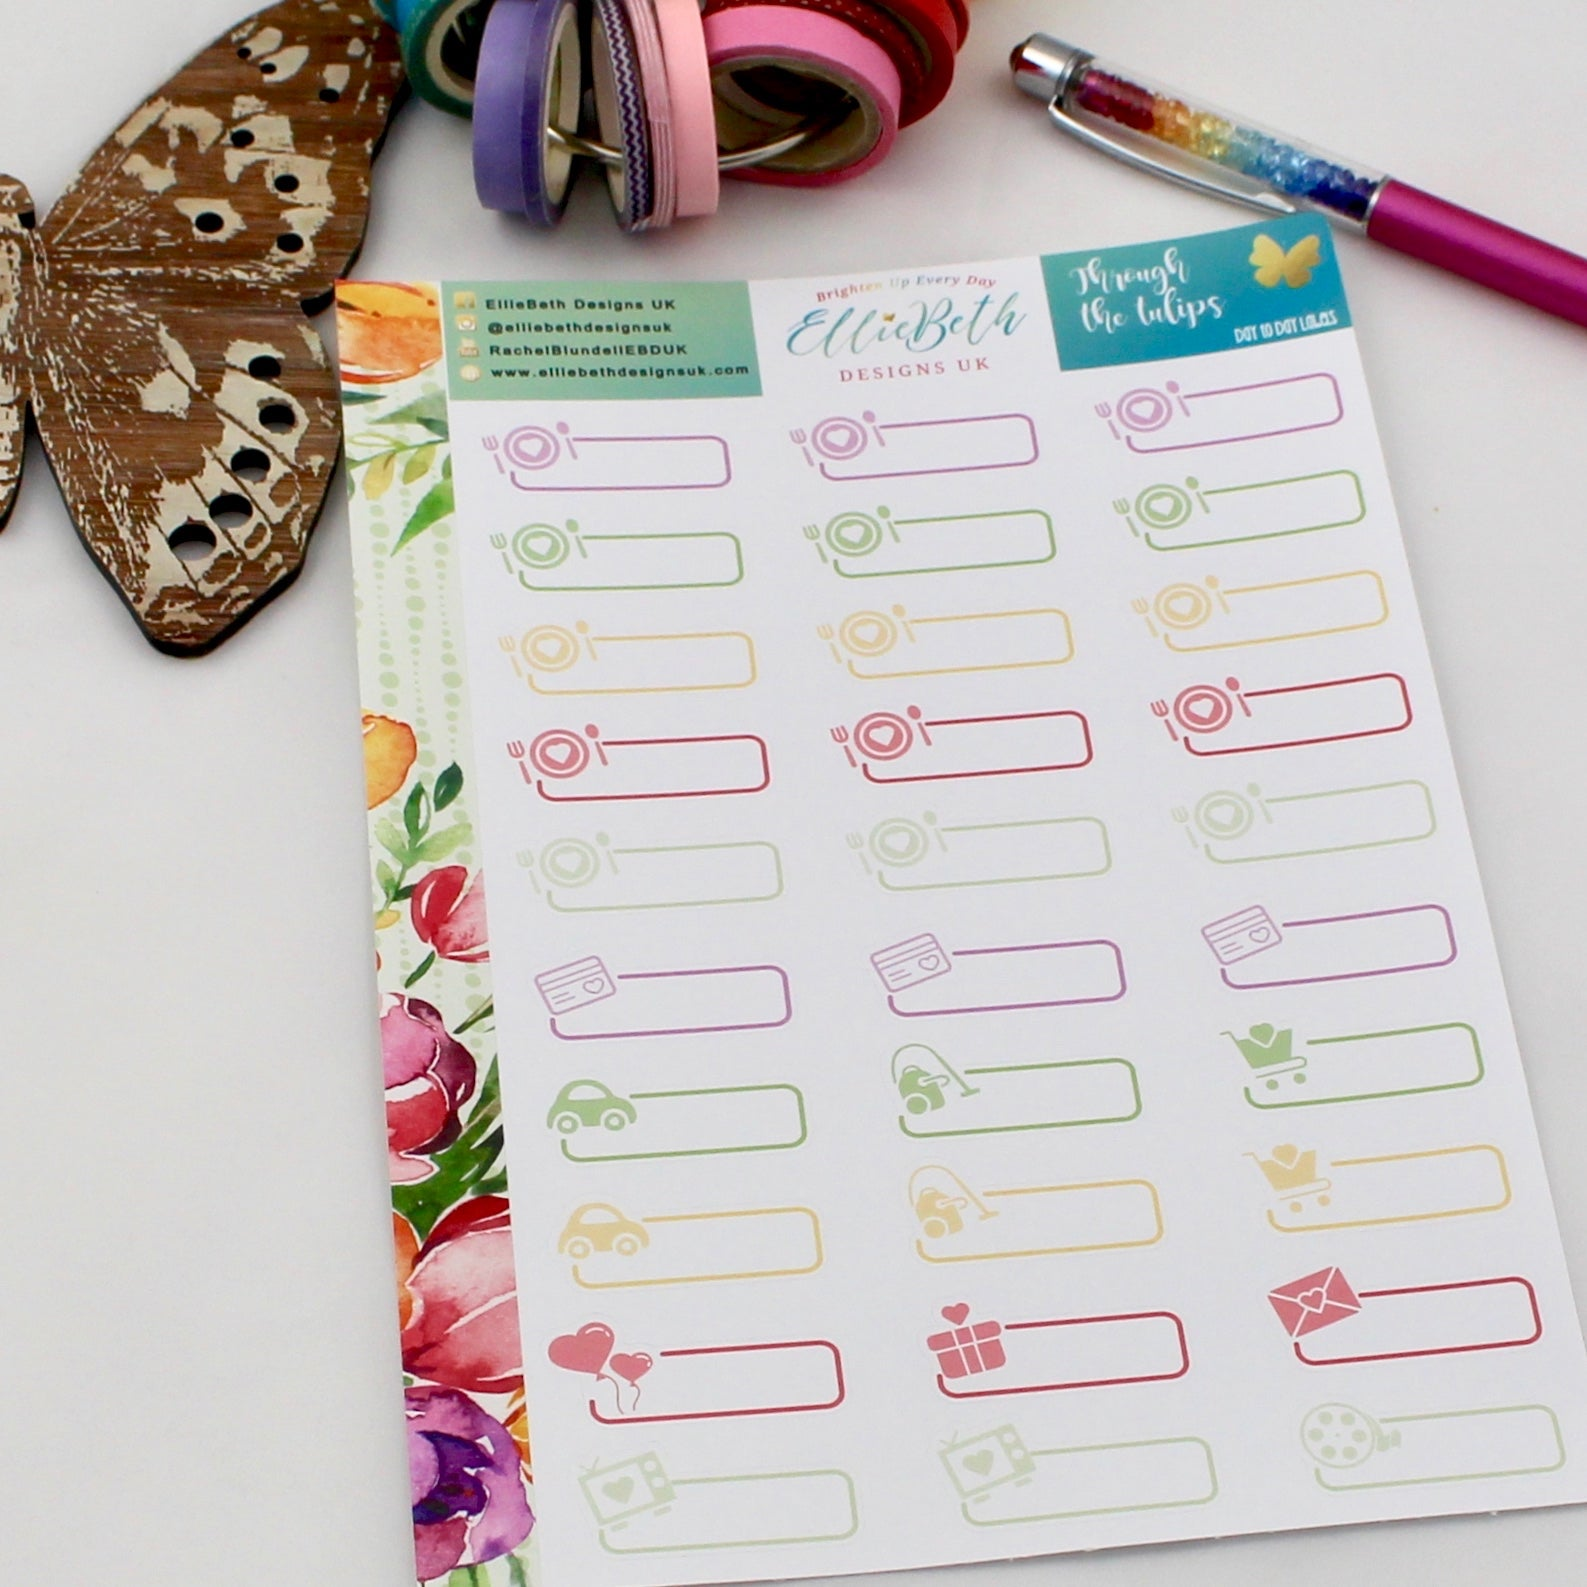 'Through the Tulips' - Day to Day Labels - A5 binder ready planner stickers - EllieBeth Designs UK